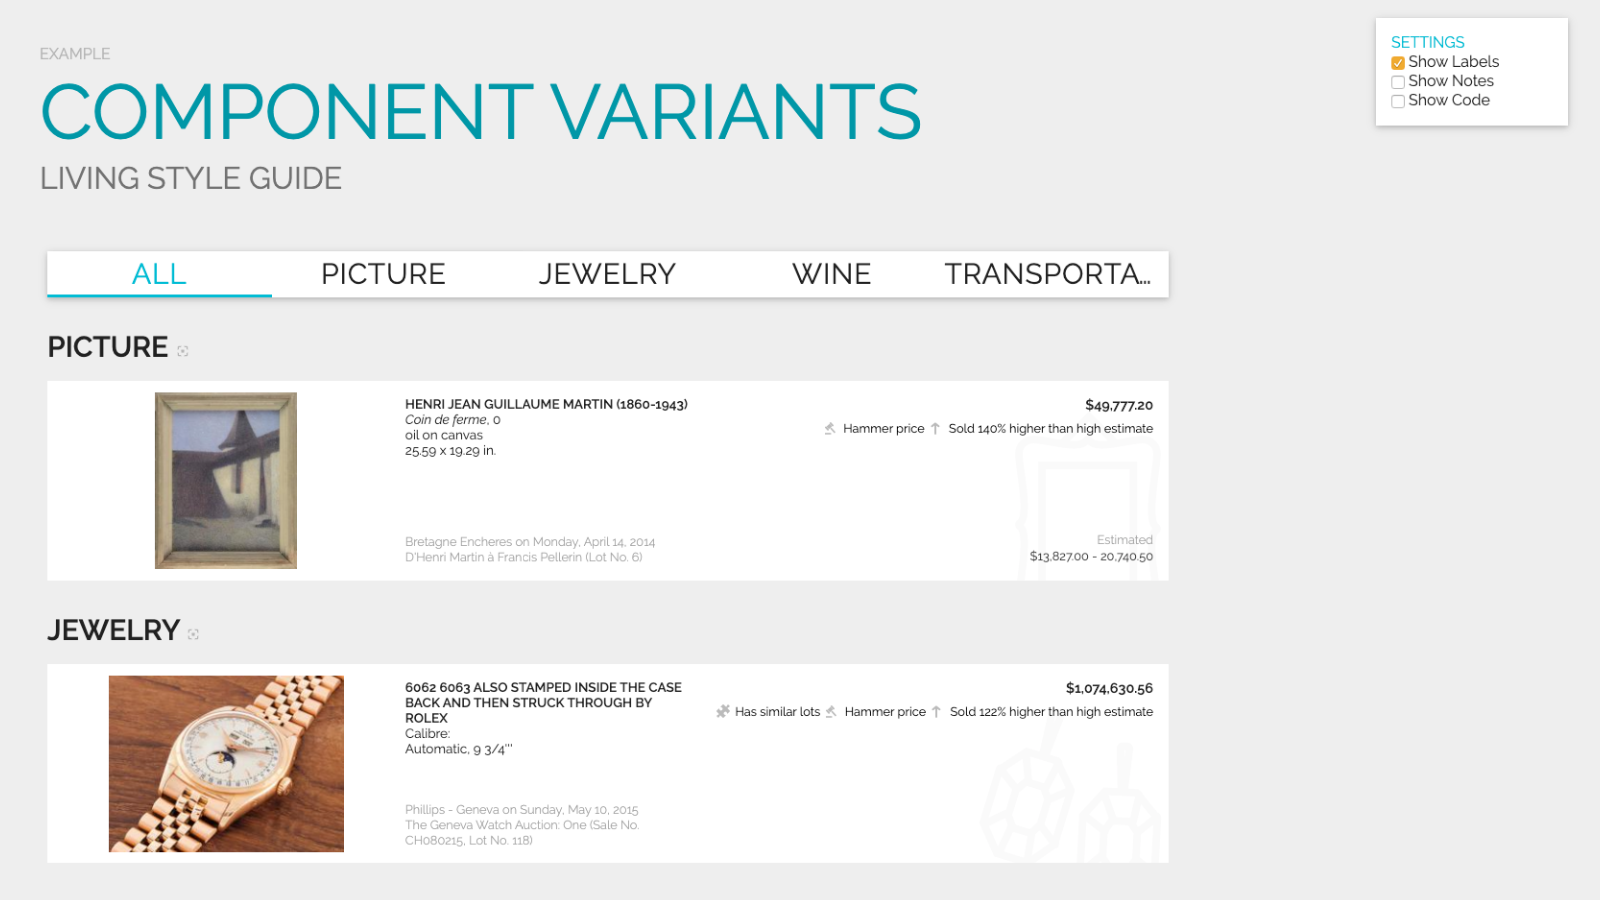 Slide content, Presenting component variants in a living style guide